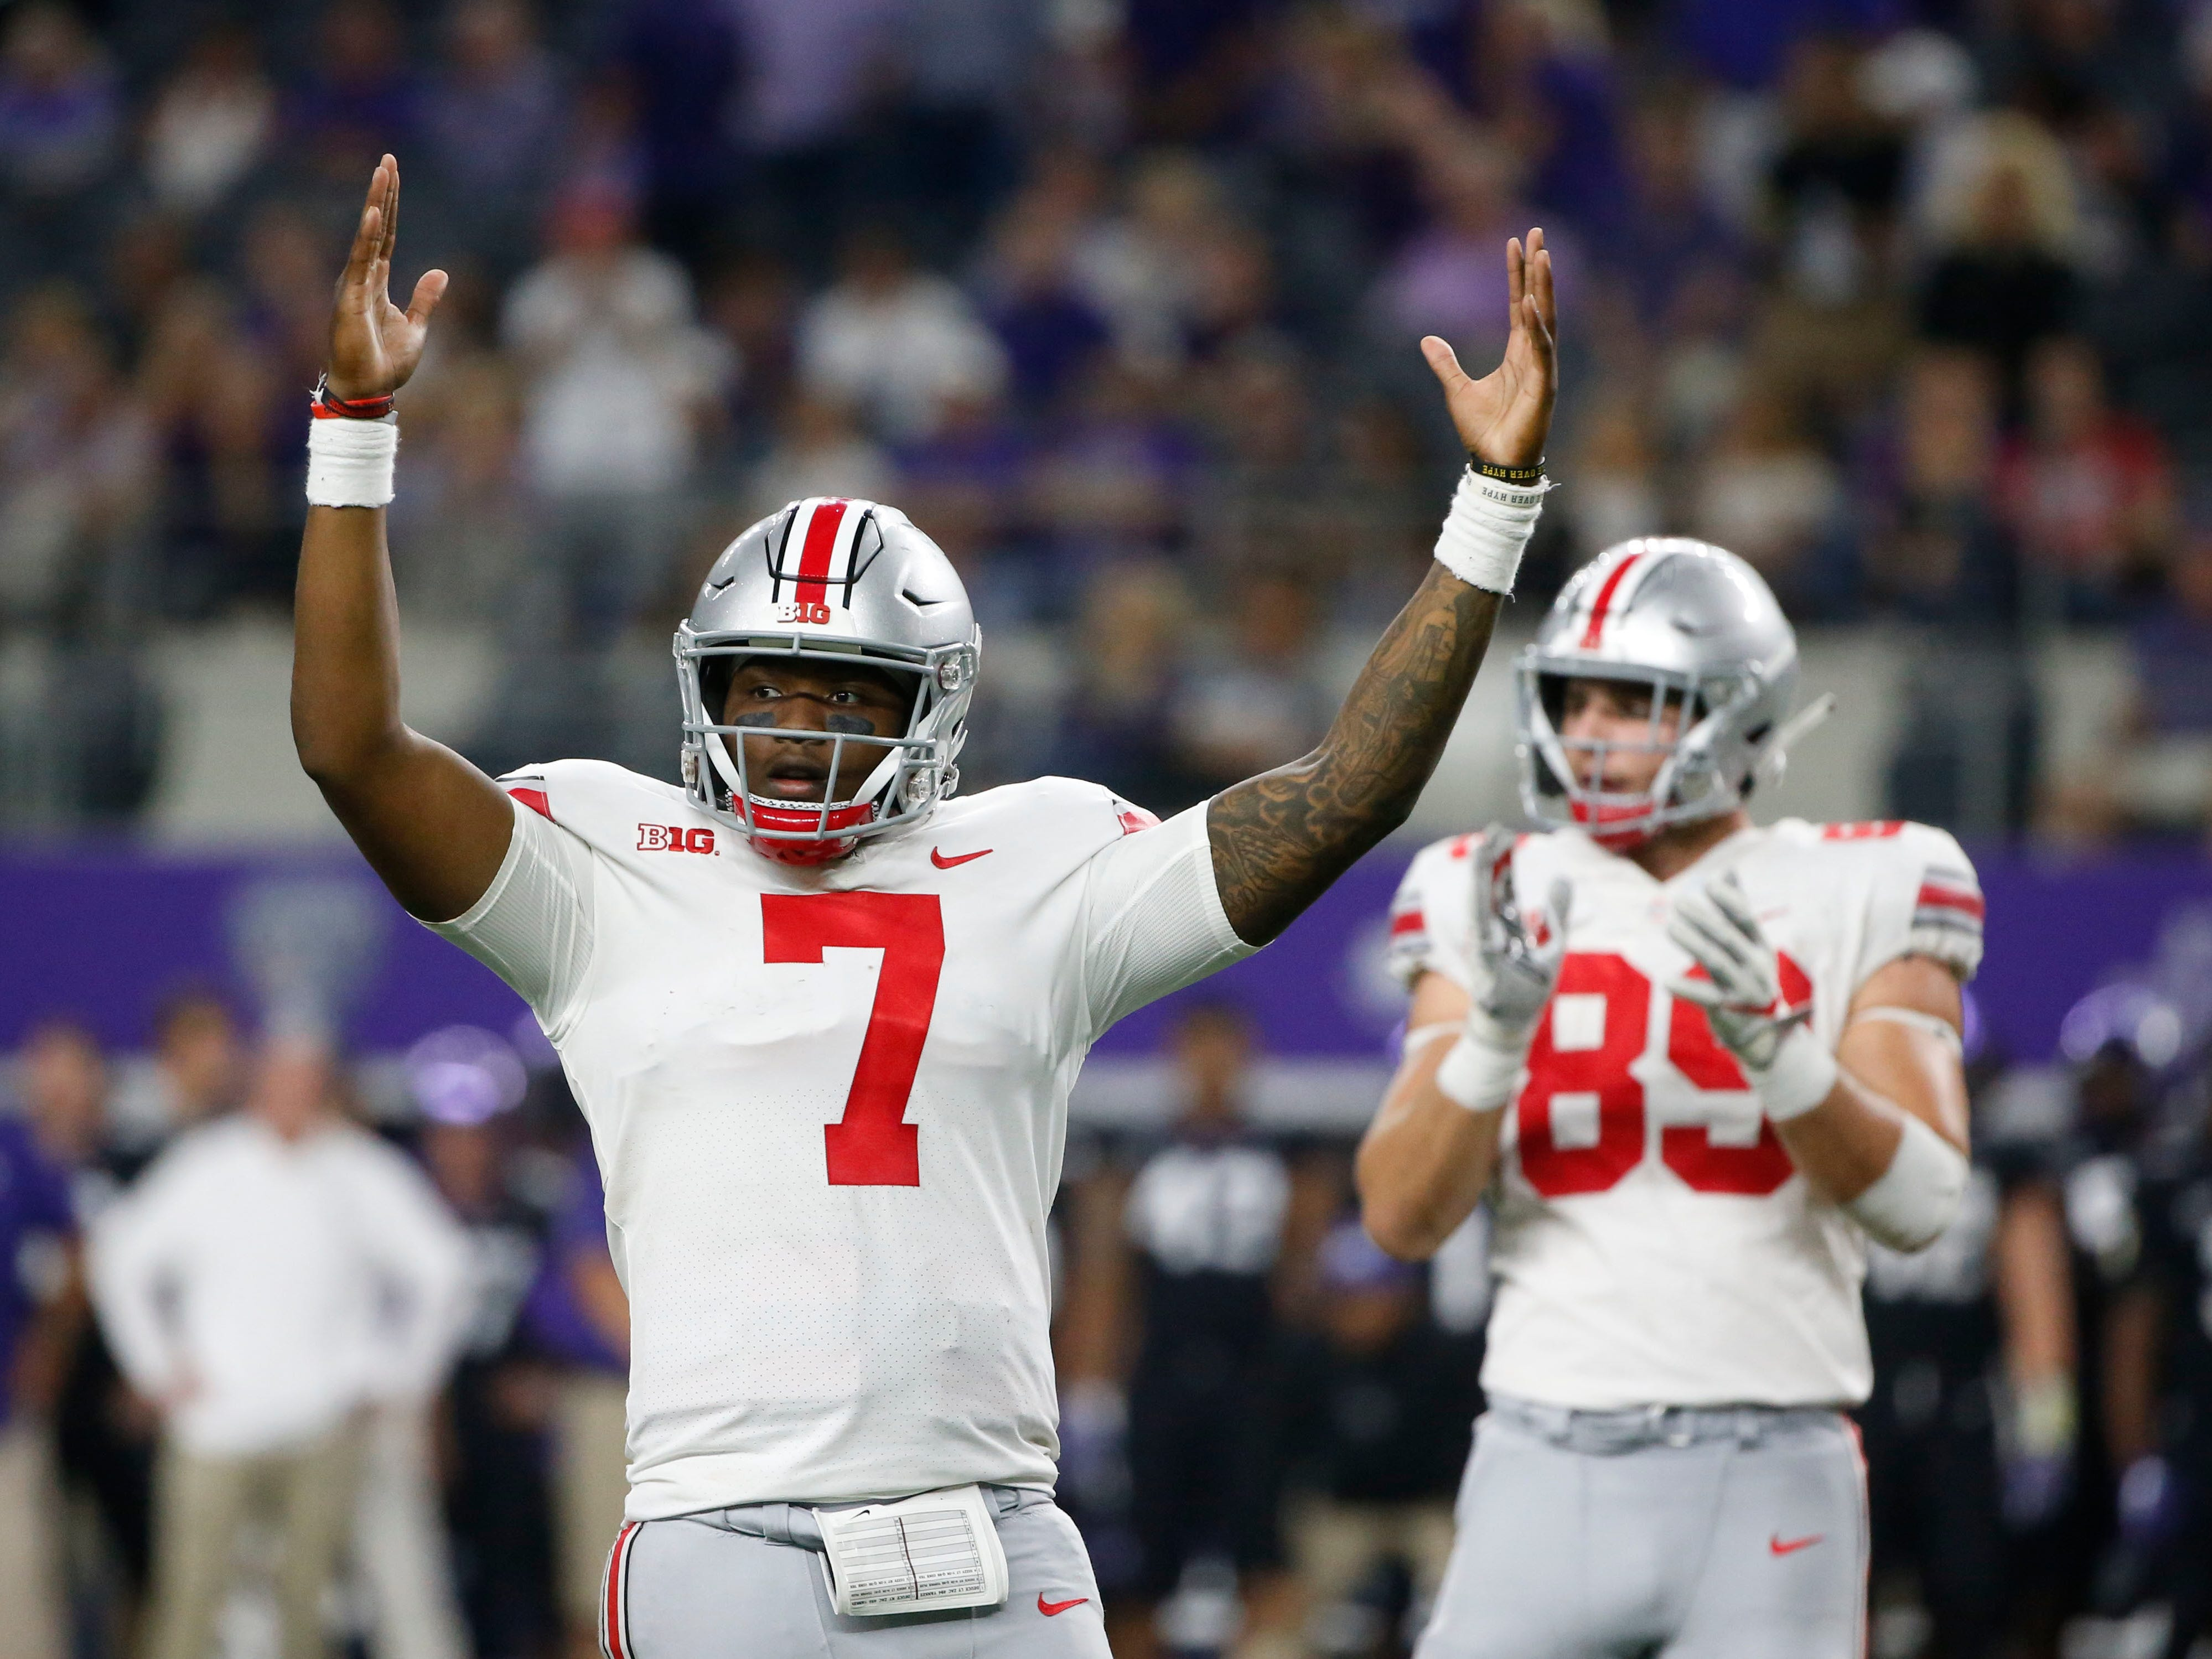 1. Ohio State (3-0, 1-0) – Just three weeks into the season, the Buckeyes might have proven themselves to the be the conference's lone legitimate contender for the College Football Playoff. A victory over TCU was further evidence as the Buckeyes exploded for three touchdowns in a four-minute span in the third quarter. A tune-up with Tulane is next before a trip to Penn State, a game that could go a long way in deciding the Big Ten East. Last week: 2.